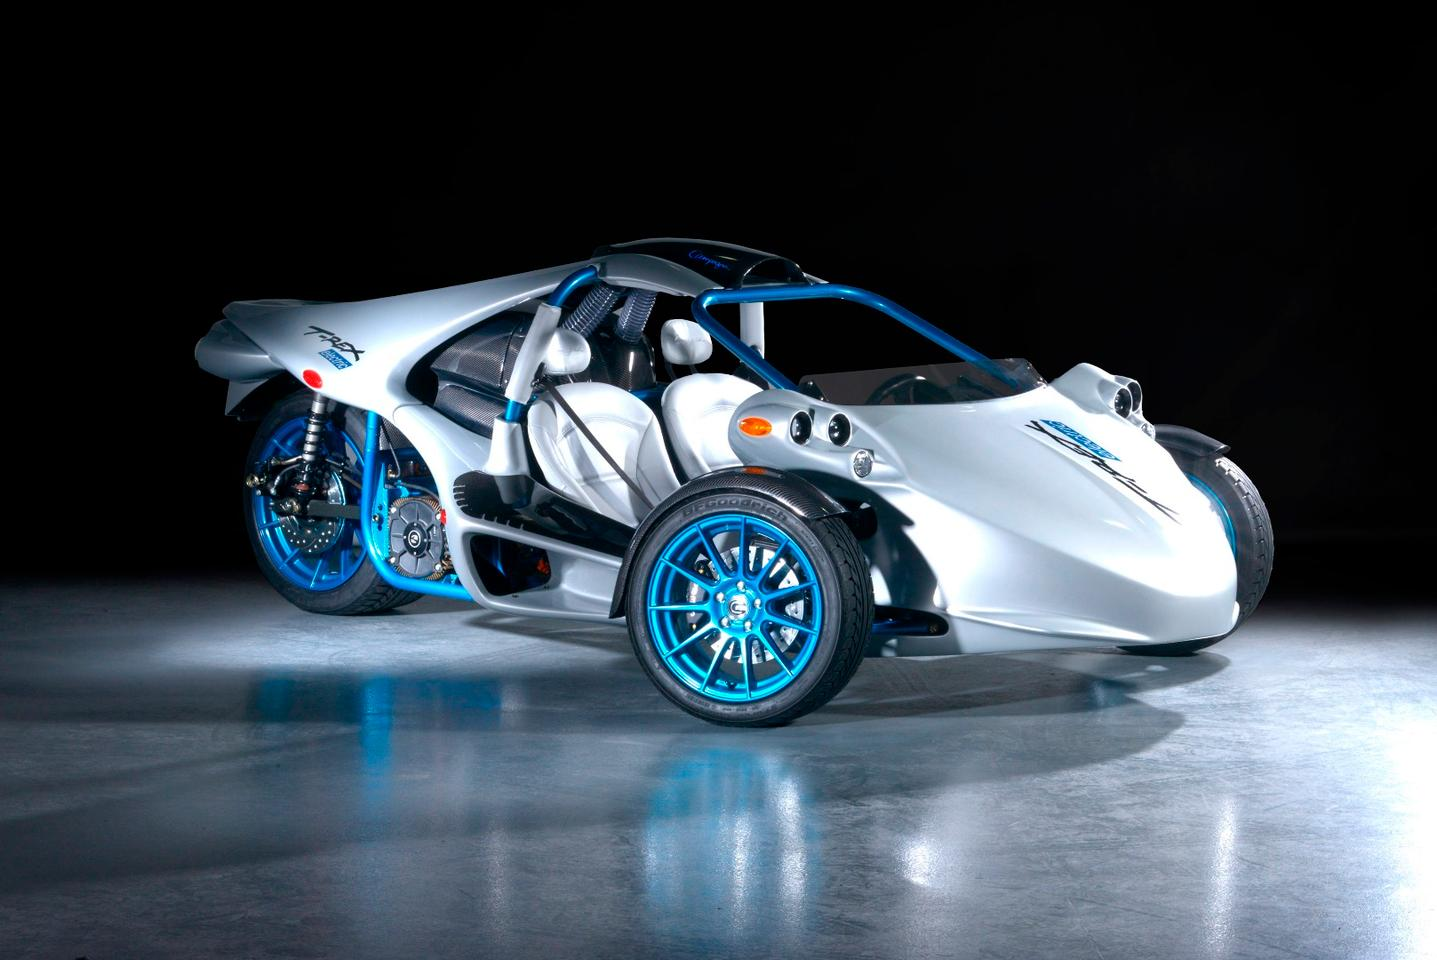 Campagna's electric T-Rex is currently at the first prototype stage of development